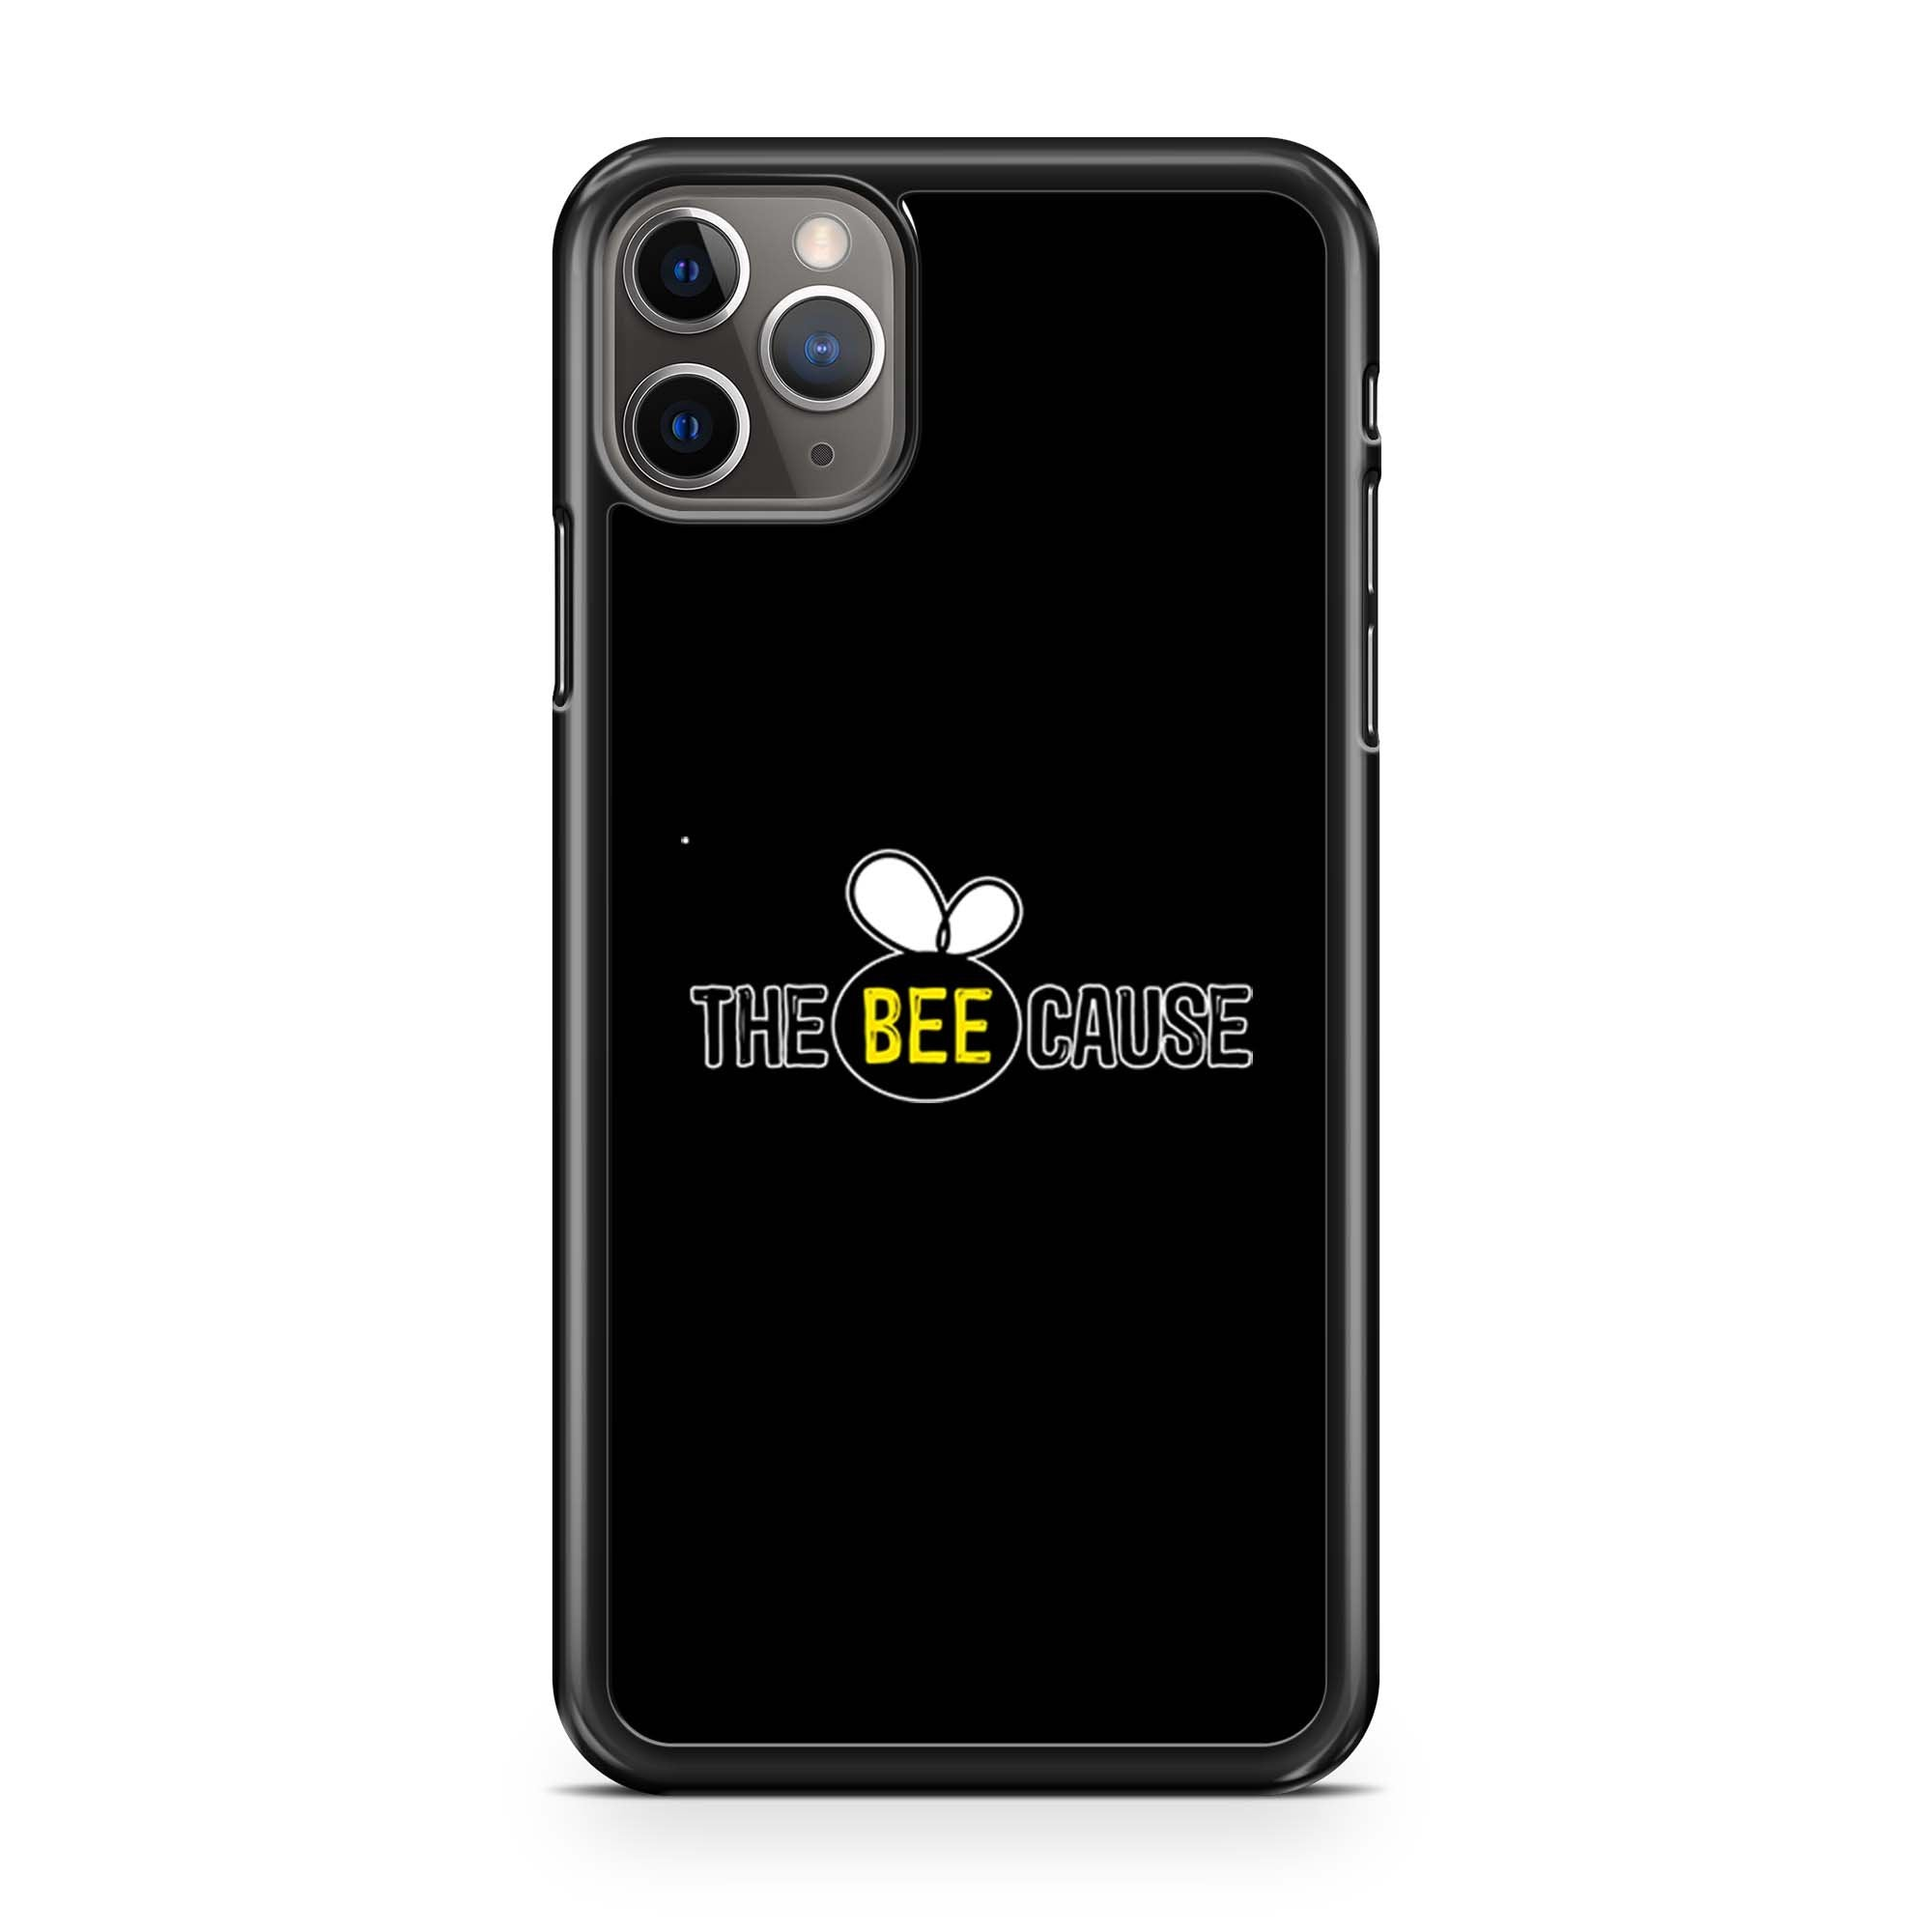 The Bee Cause iPhone 11 Pro Max Case